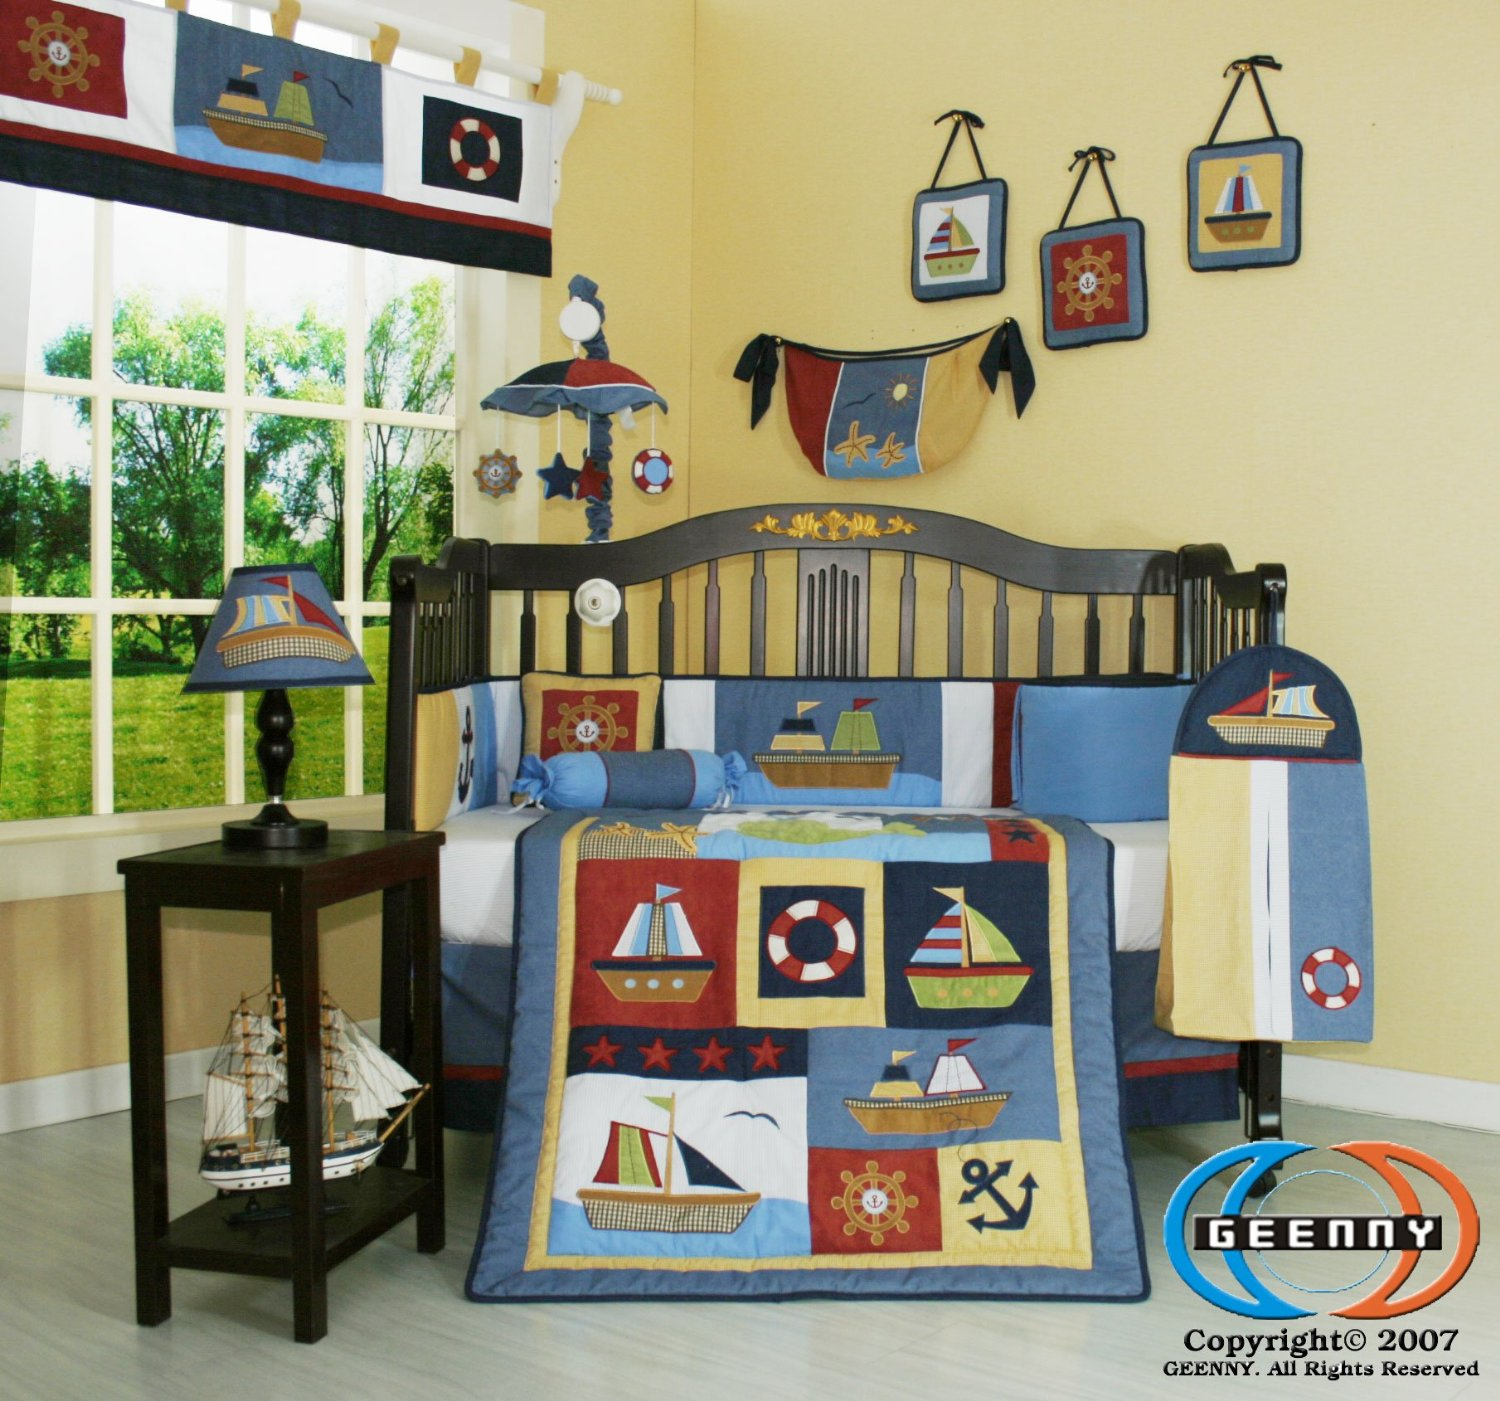 bedding sparky bedroom pc to kids nursery full way with bedtime cribs nautical boy originals baby crib bed s size your of set sheets themed decorate blue amazoncom fun